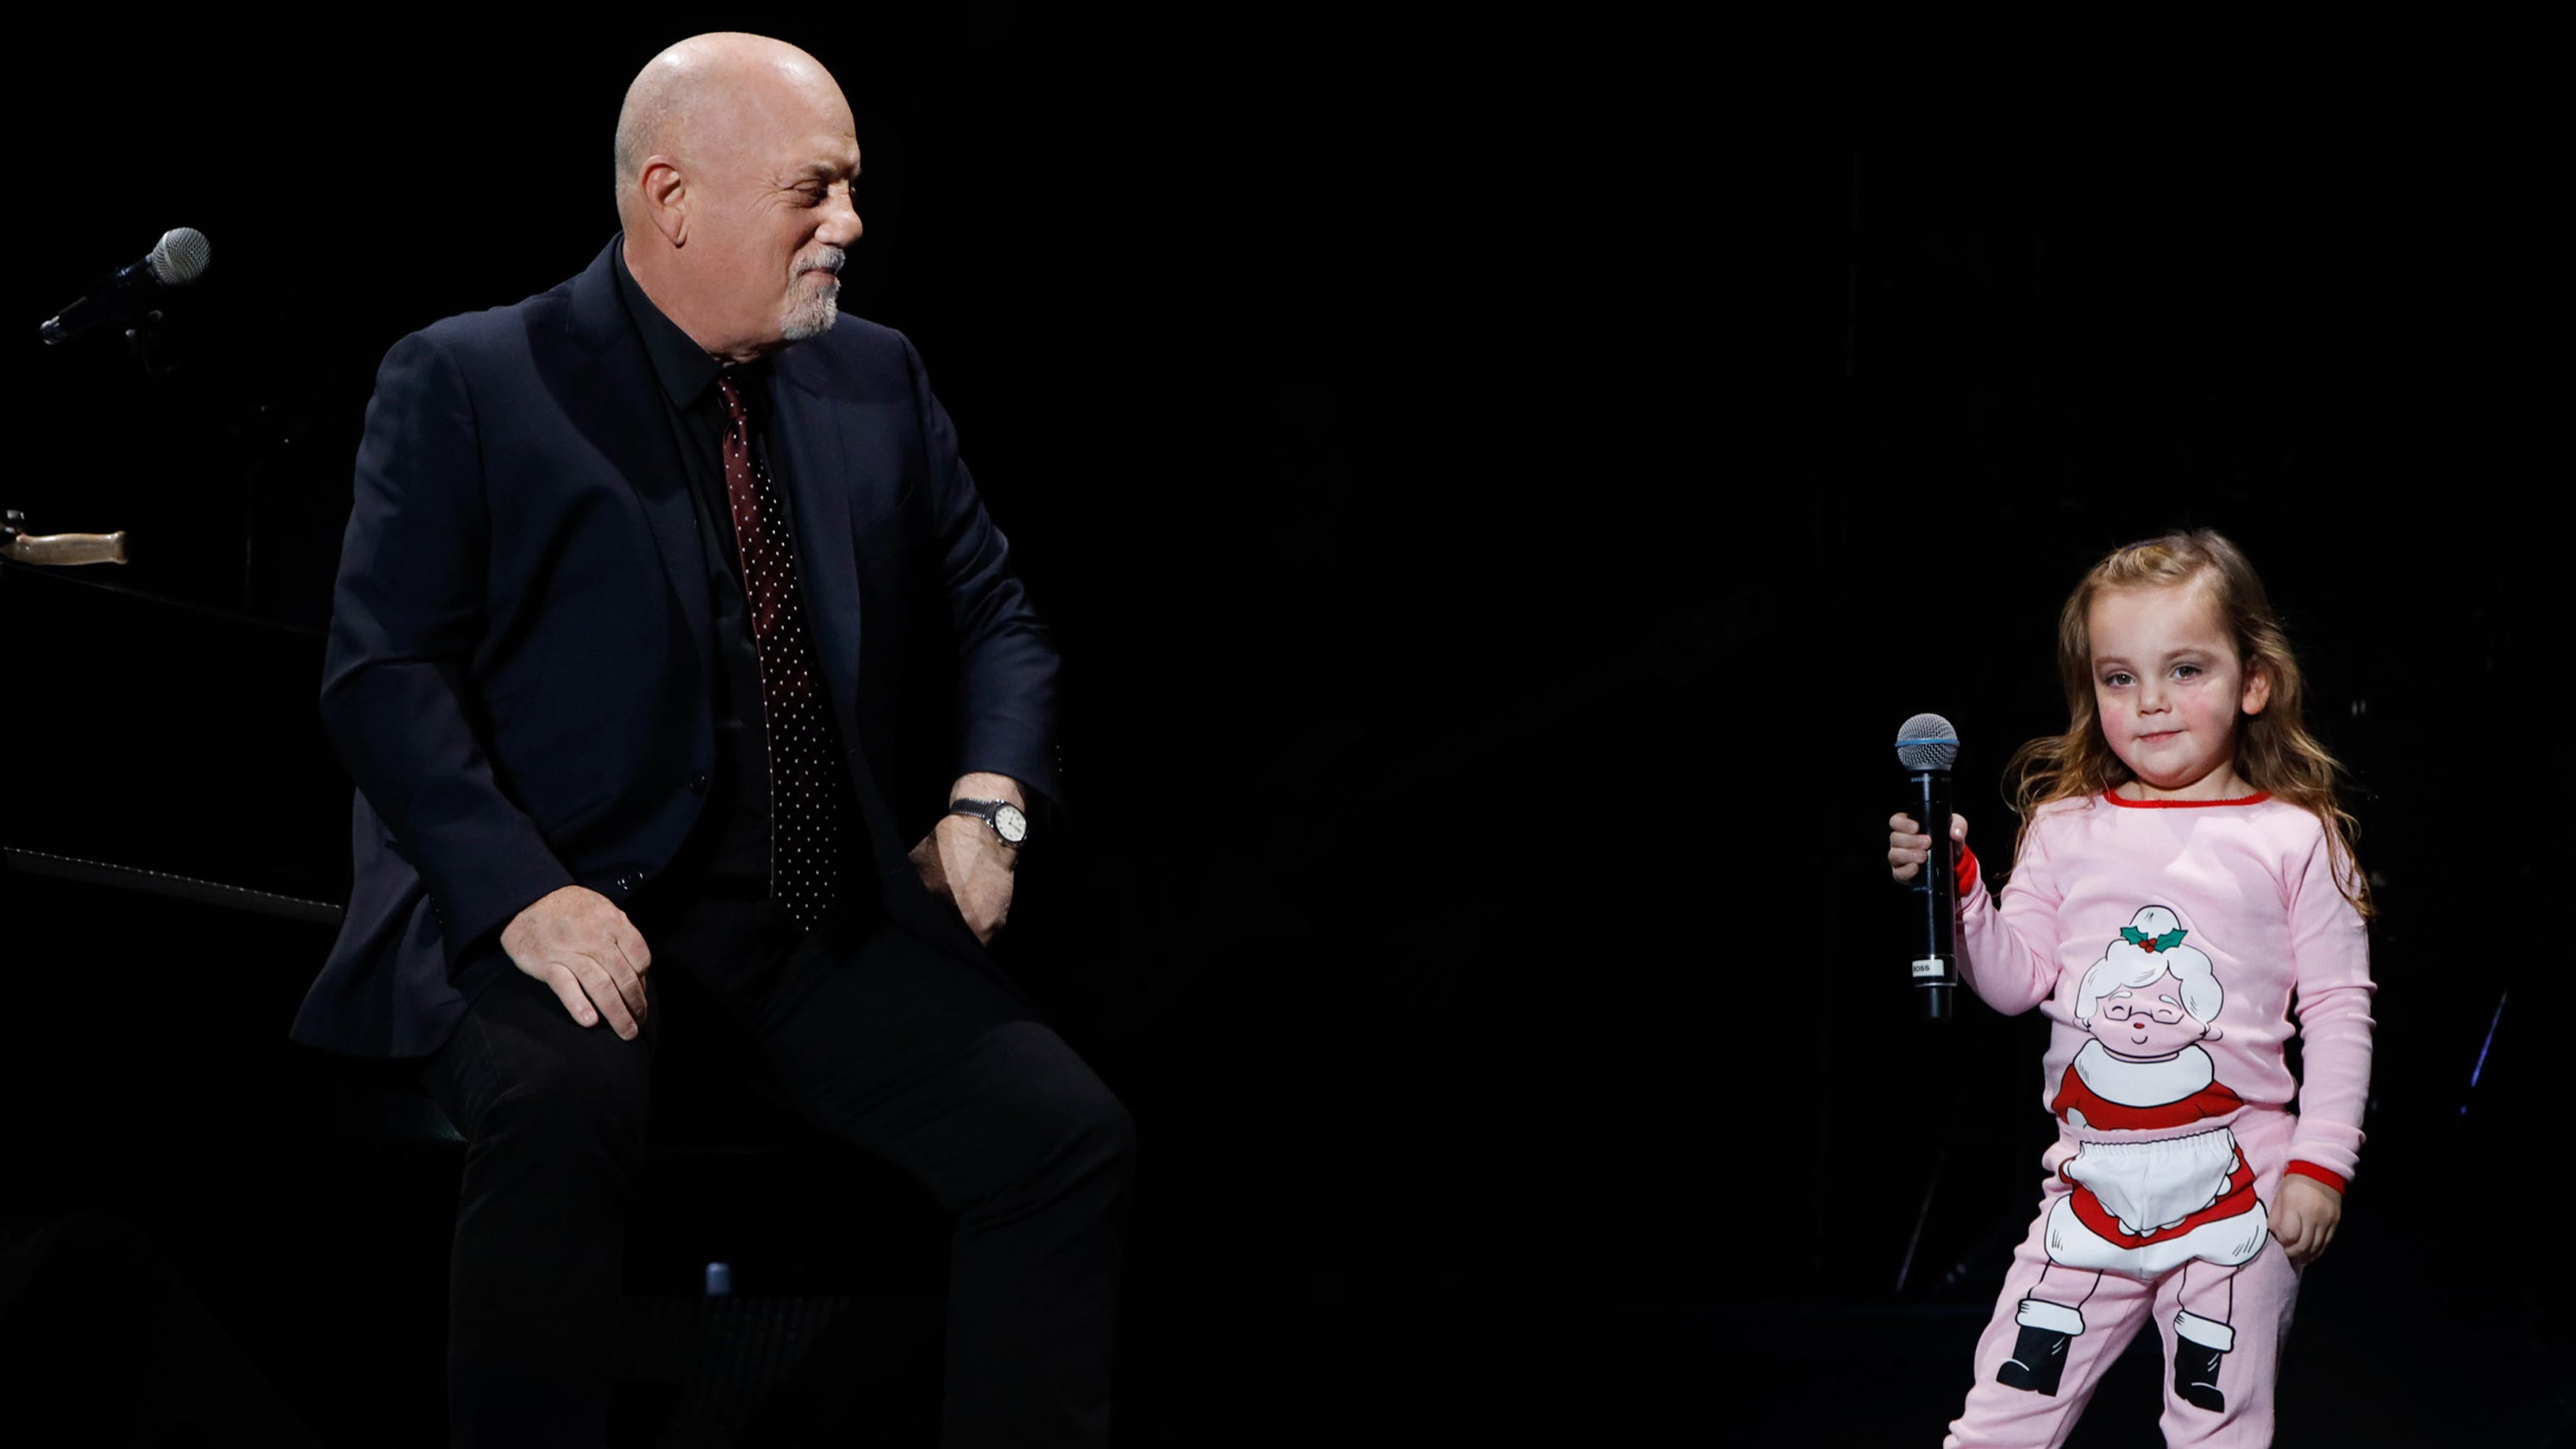 Billy joel 39 s 3 year old steals his show at madison square - Billy joel madison square garden march 3 ...